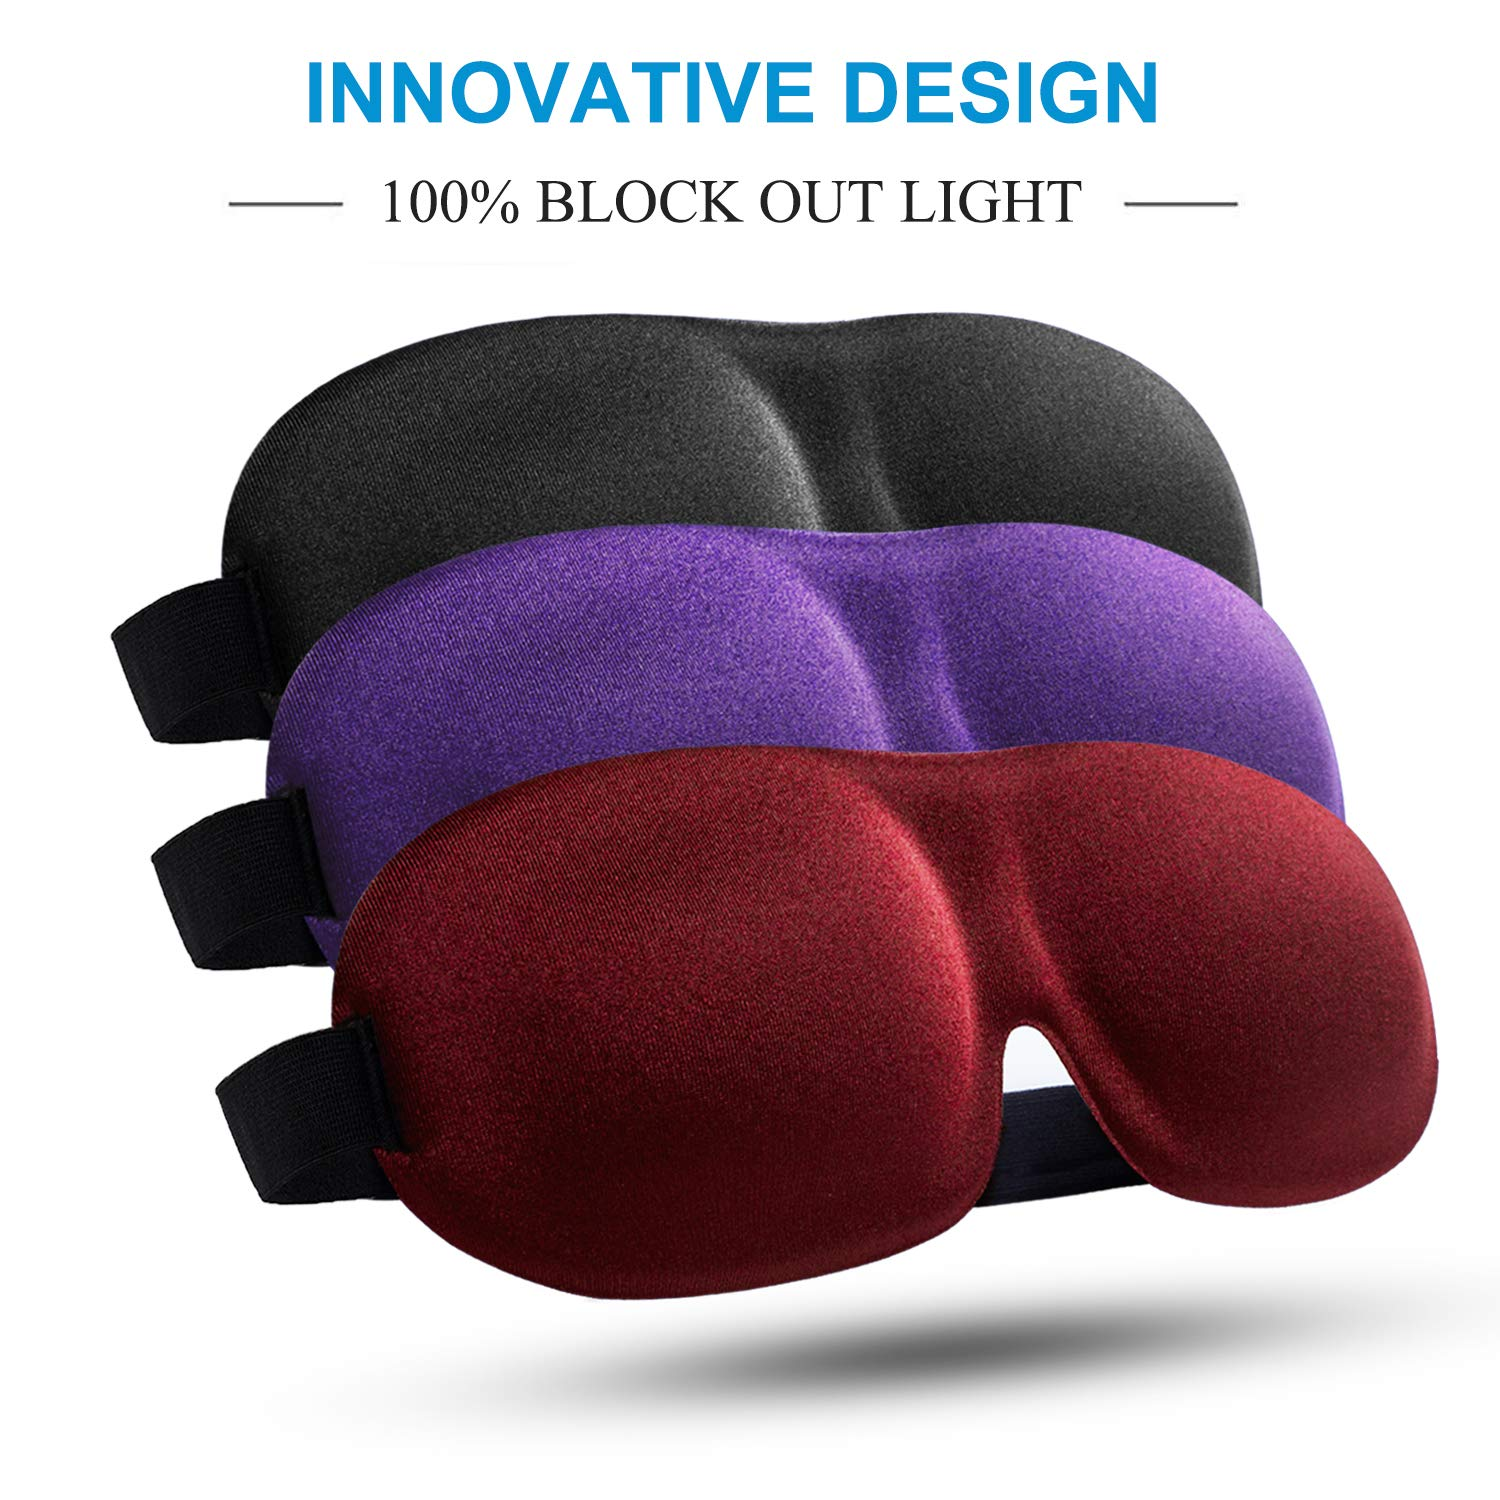 Sleep Mask 3 Pack, Upgraded 3D Contoured 100% Blackout Eye Mask for Sleeping with Adjustable Strap, Comfortable & Soft Night Blindfold for Women Men, Eye Shades for Travel/Naps, Black/Purple/Red